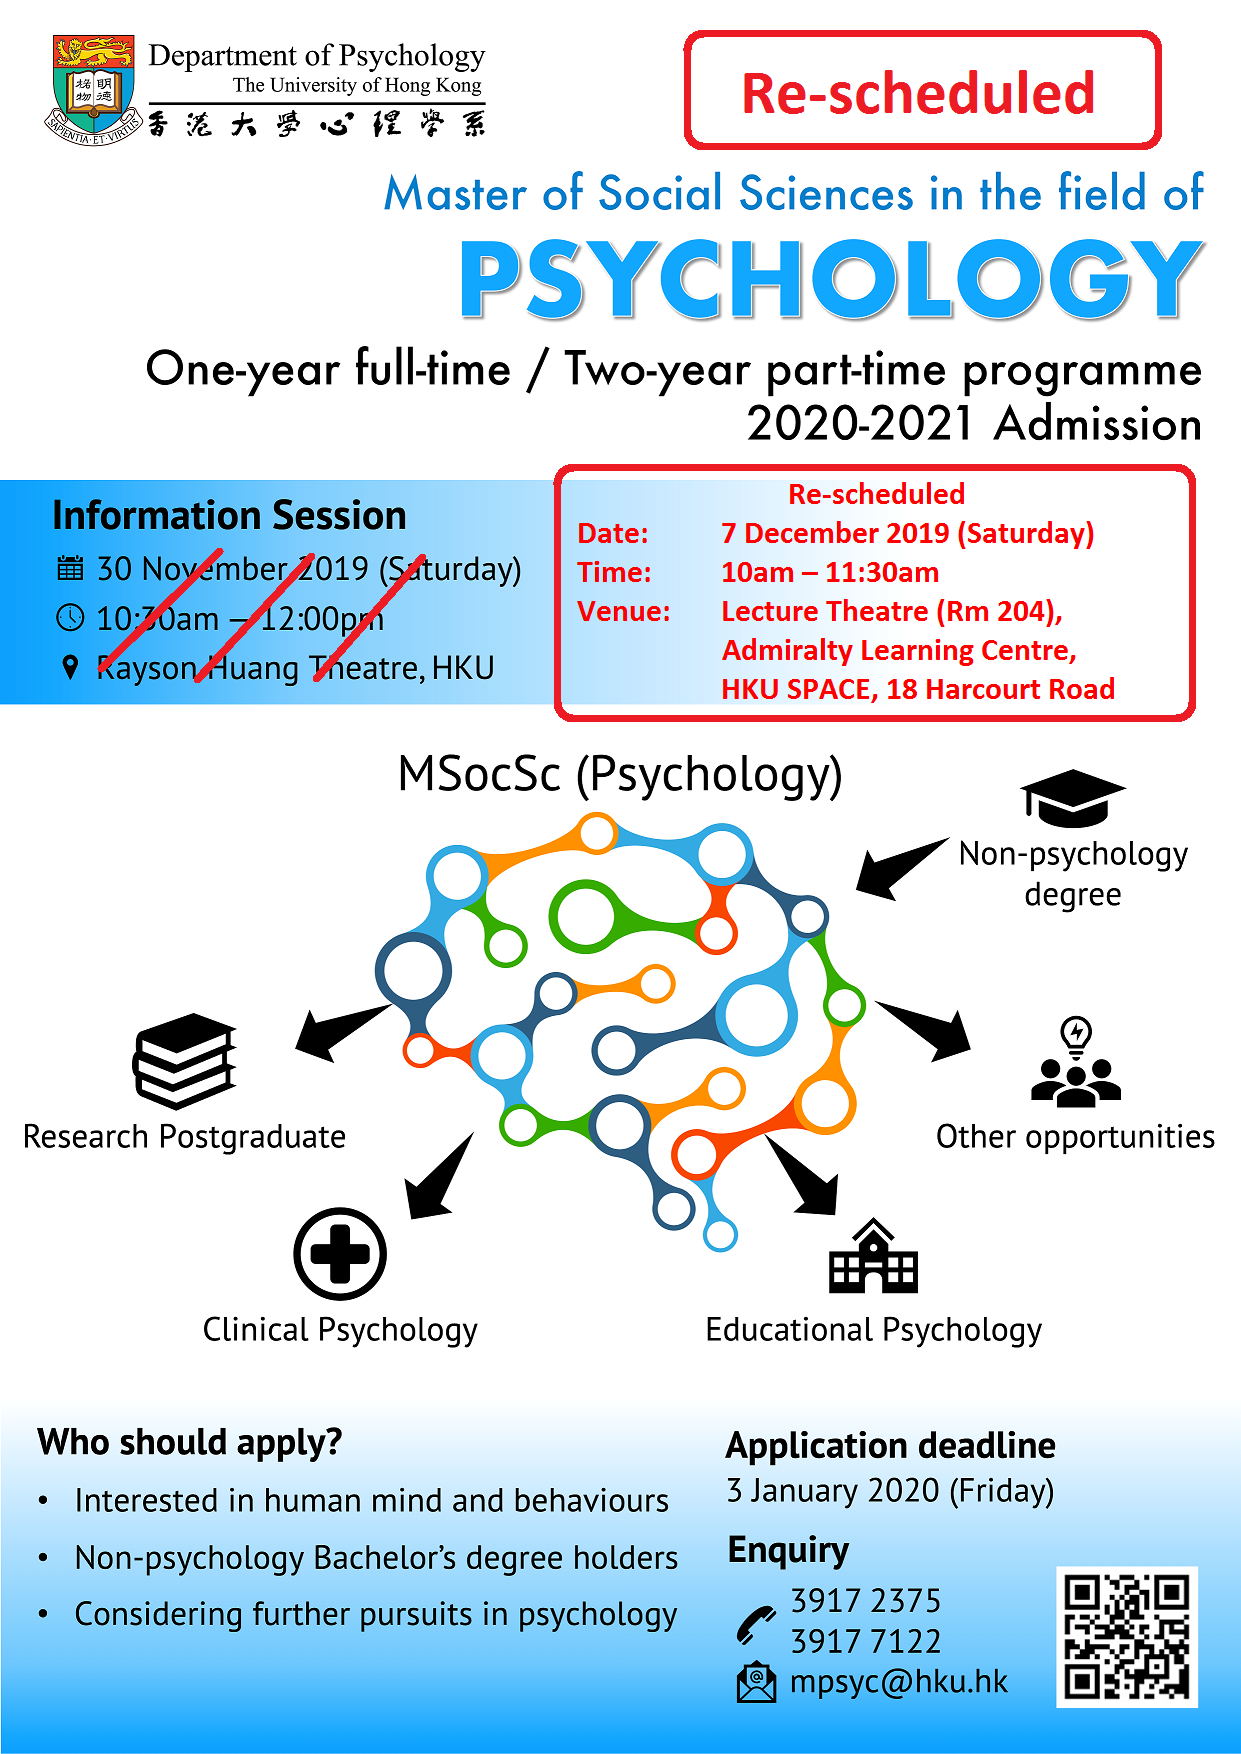 Programme Leaflet, Master of Social Sciences in the field of Psychology